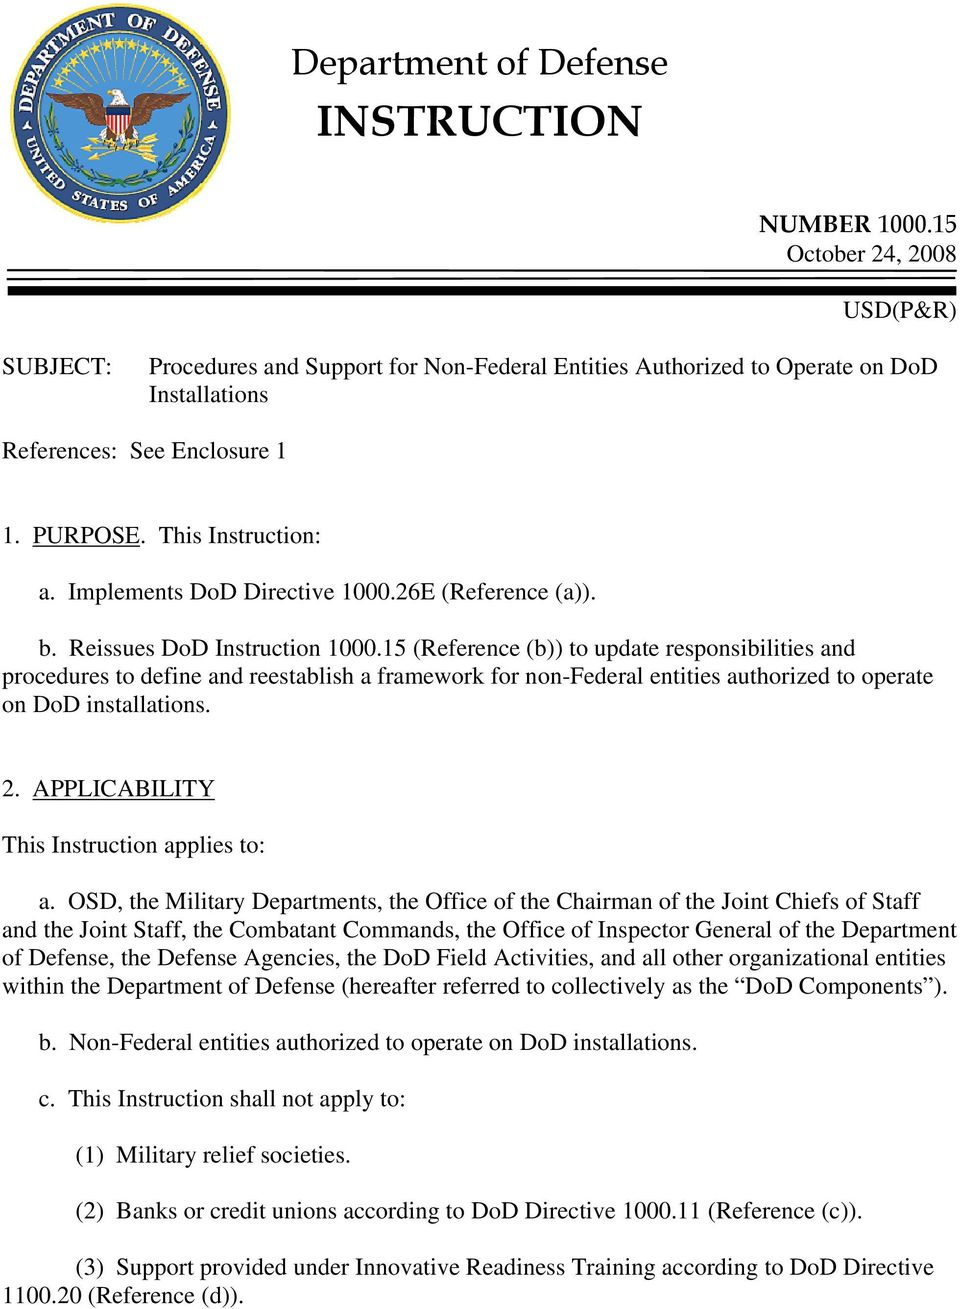 Implements DoD Directive 1000.26E (Reference (a)). b. Reissues DoD Instruction 1000.